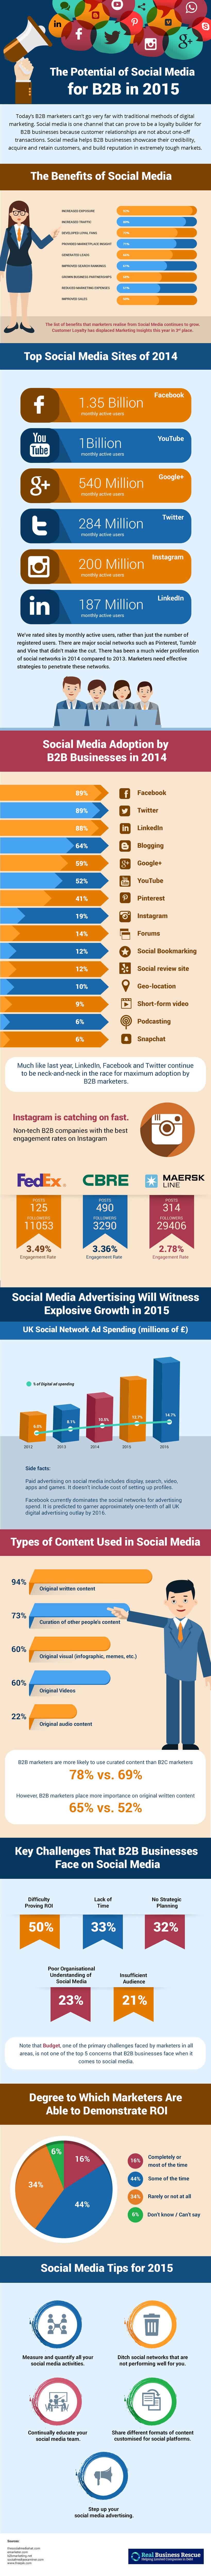 How-B2B-Businesses-Are-Tackling-Social-Media-In-2015_mini